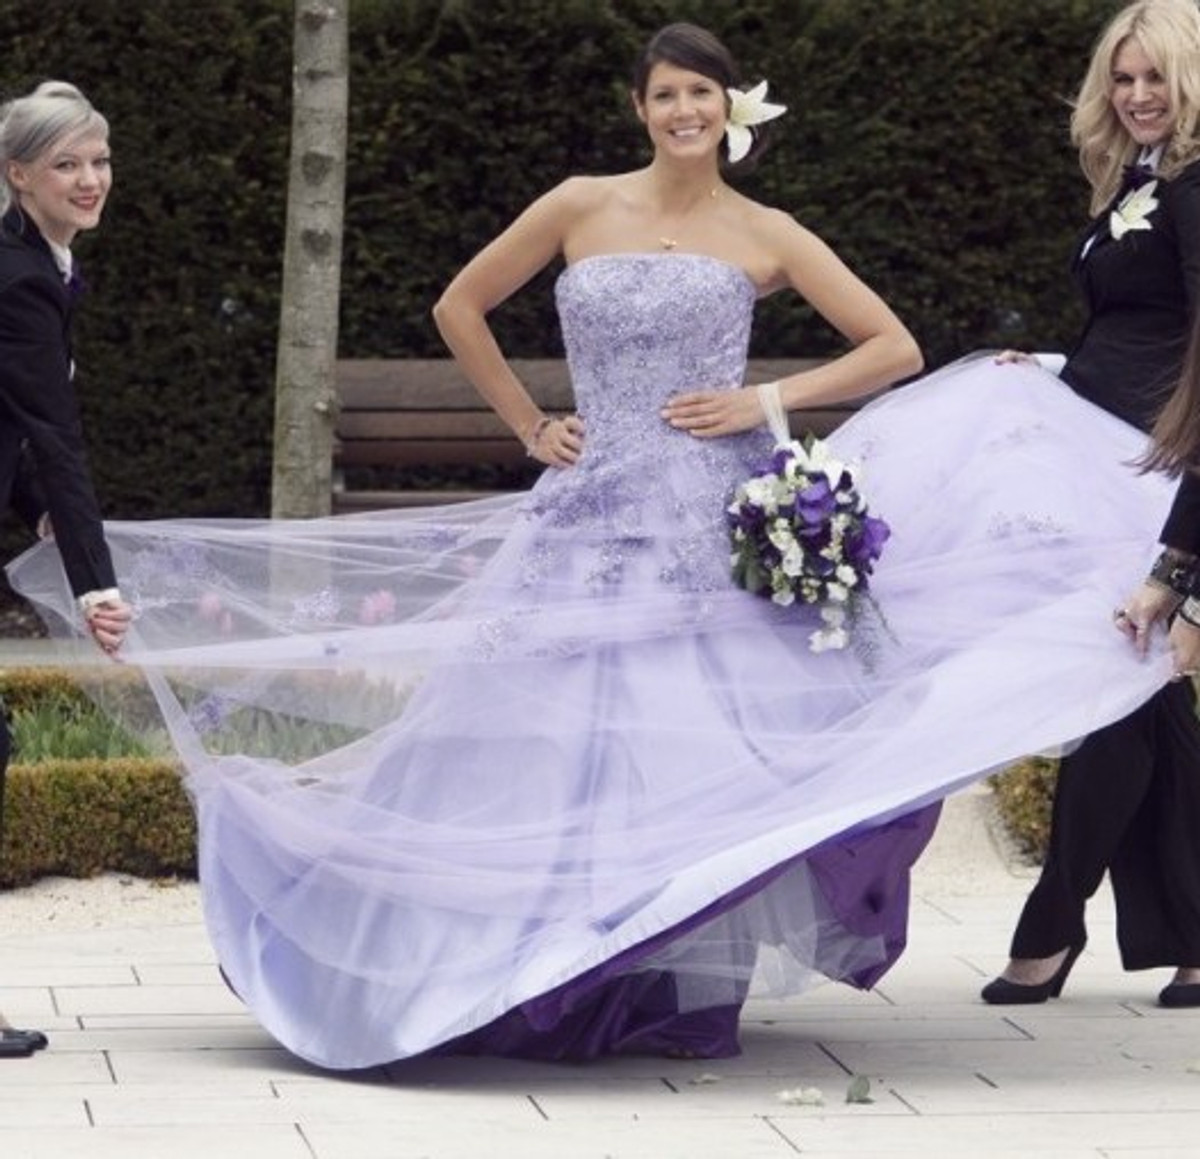 Lavender wedding dress with lace wedding dress fantasy lavender wedding dress junglespirit Image collections